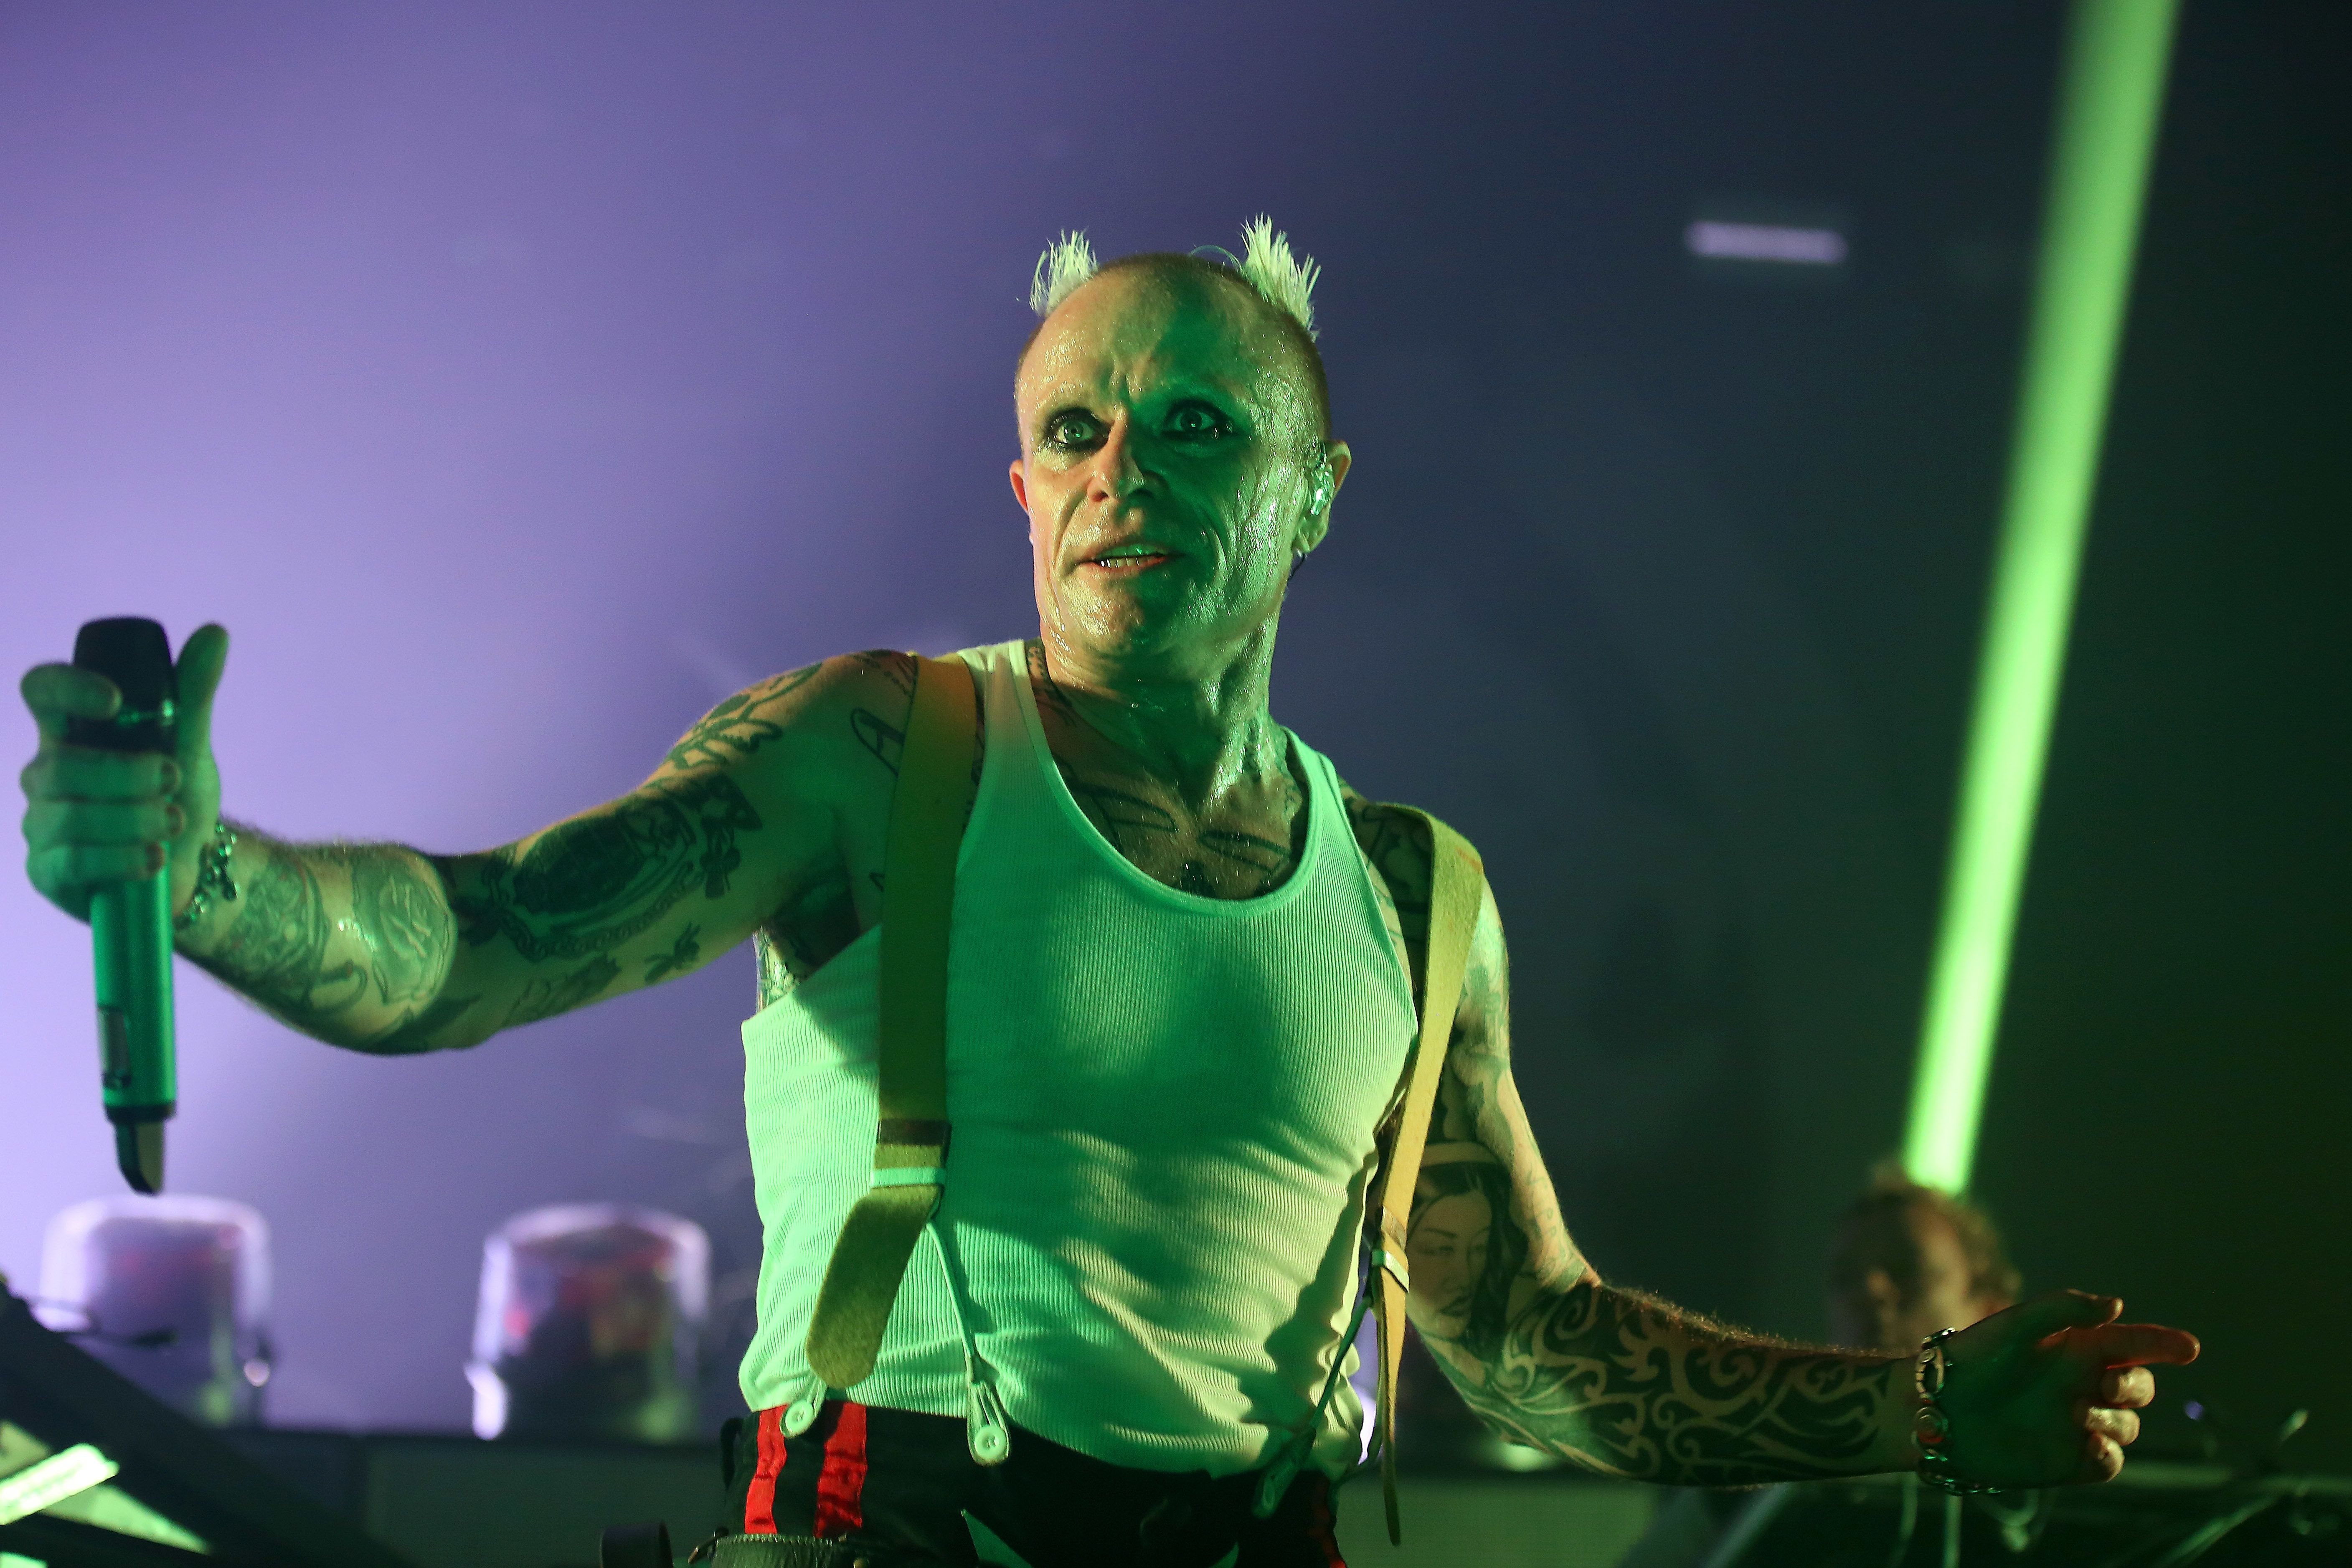 The Prodigy cancel all upcoming gigs and tours